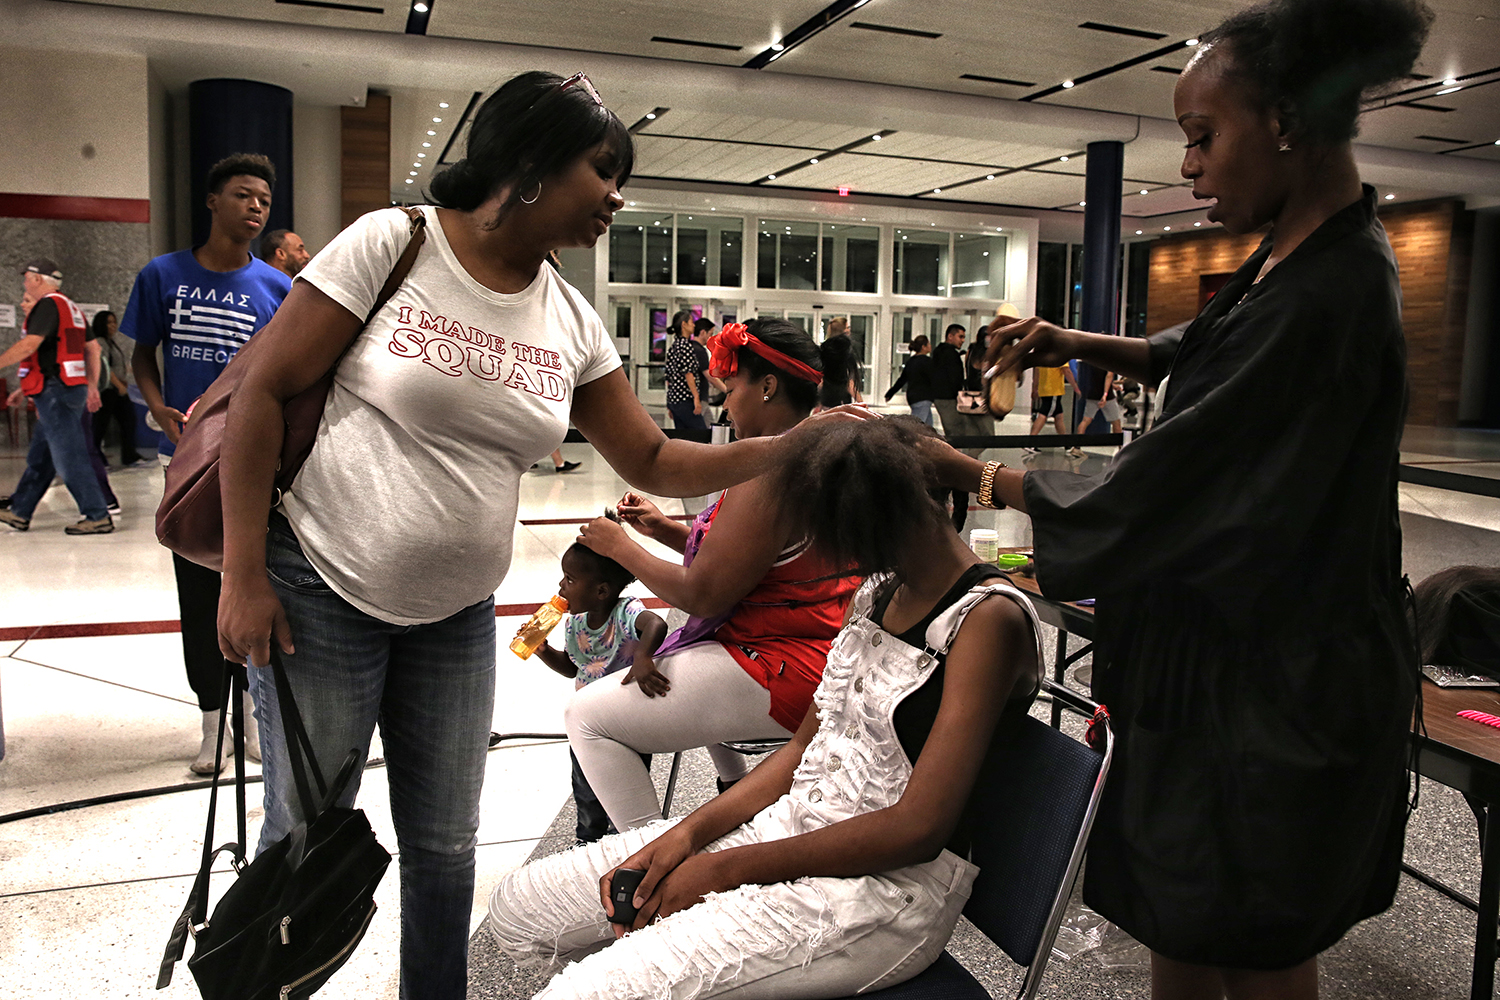 Yvonne Ferguson-Smith helps with her daughter Yasmin's haircut inside the George R. Brown Convention Center on Aug. 31, 2017. Meka Fisher, of Laced Up By Meka hair salon, volunteered with nearly a dozen other barbers and hairdressers to at the main Hurricane Harvey evacuation center. (Robert Gauthier/Los Angeles Times/TNS)